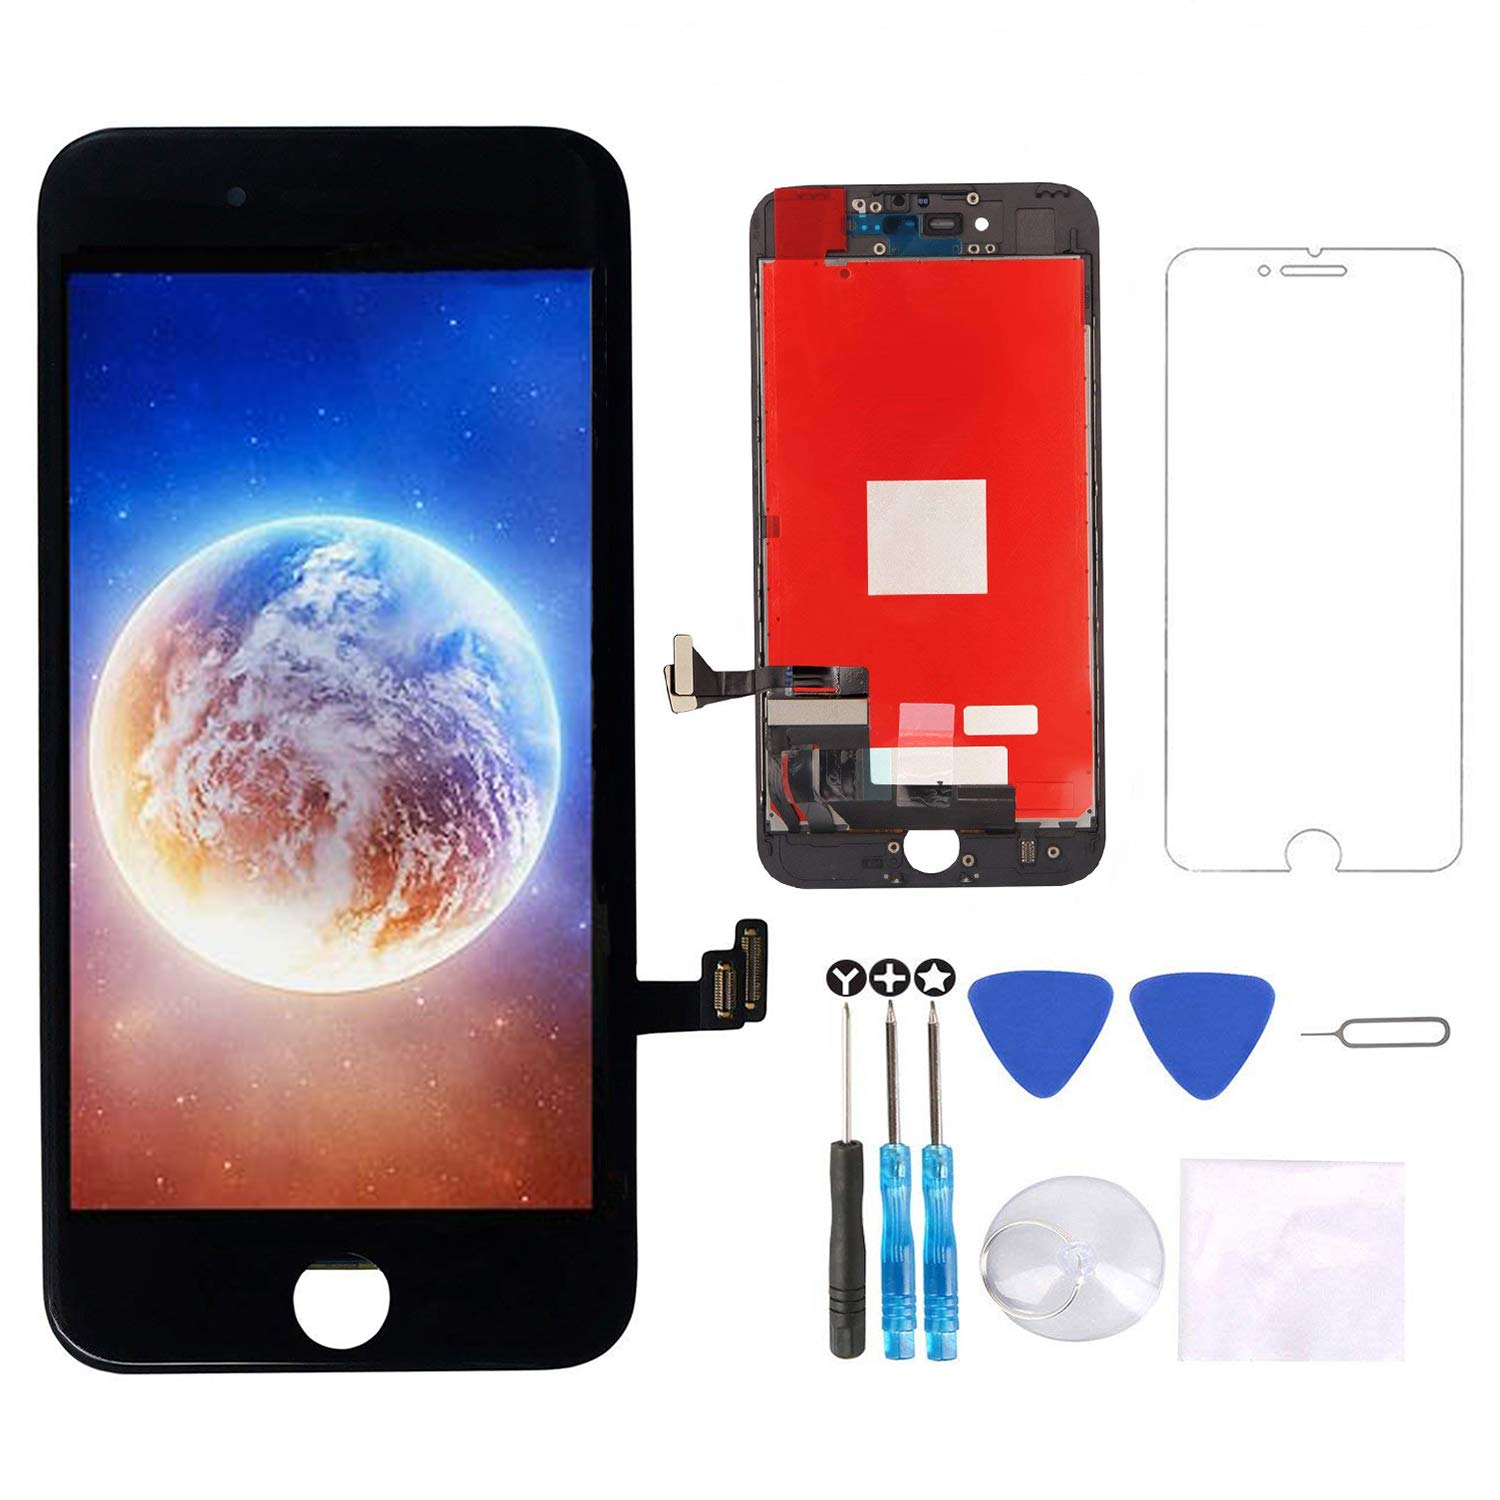 Screen Replacement for iPhone 8 Screen Black 4.7'' LCD 3D Touch Screen Digitizer Replacement Frame Display Assembly Set with Screen Protector and Repair Tools for iPhone 8 Screen Replacement Black by Gucloudy